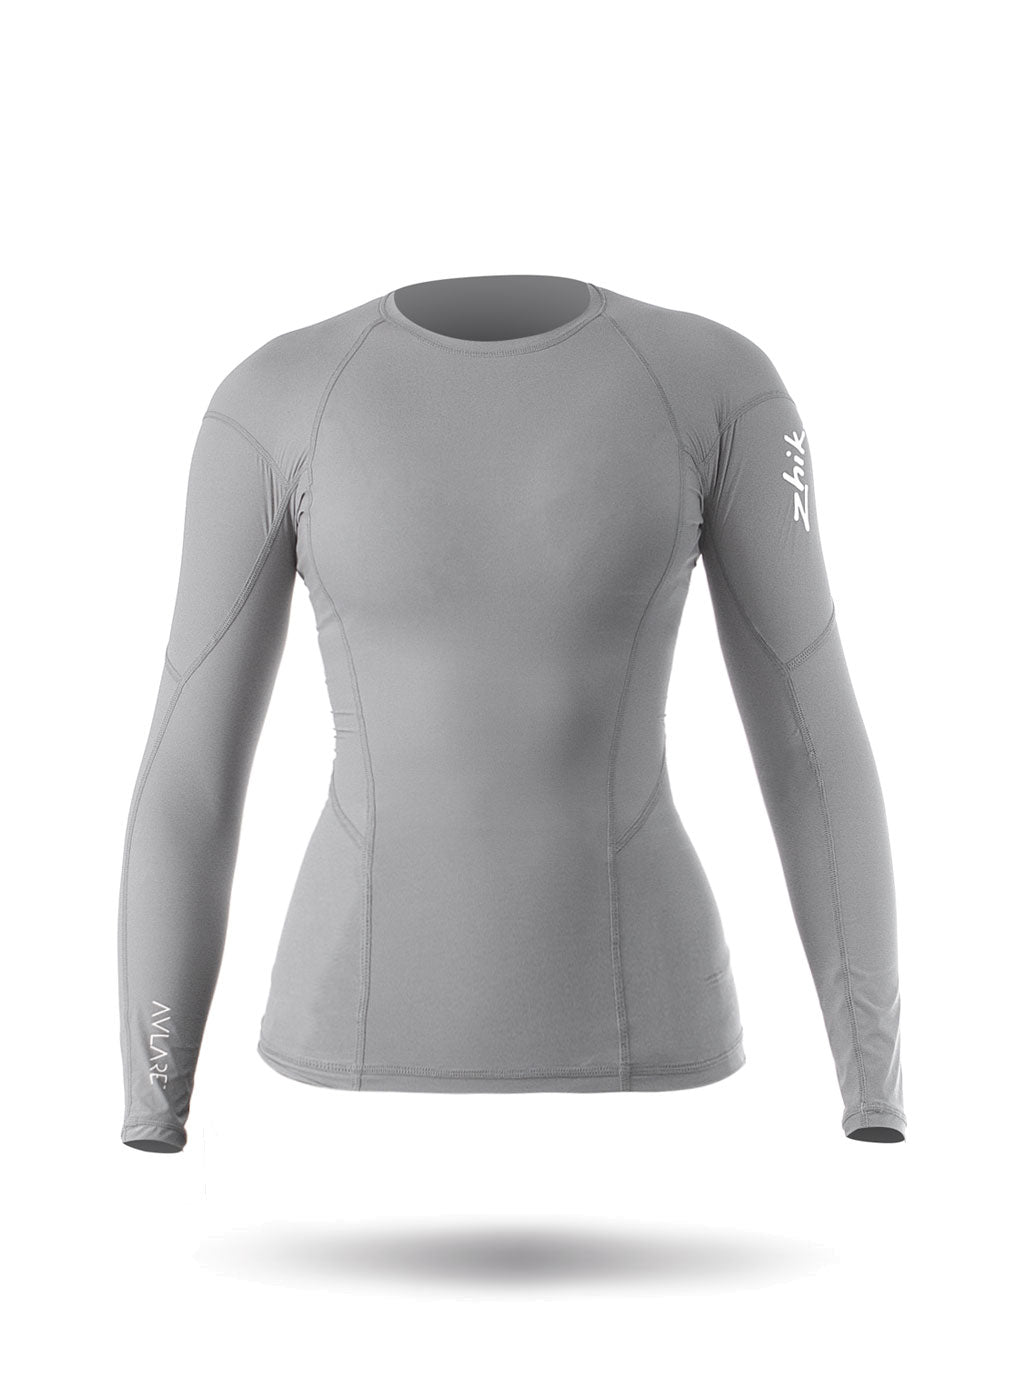 Zhik Womens Avlare Top - Grey